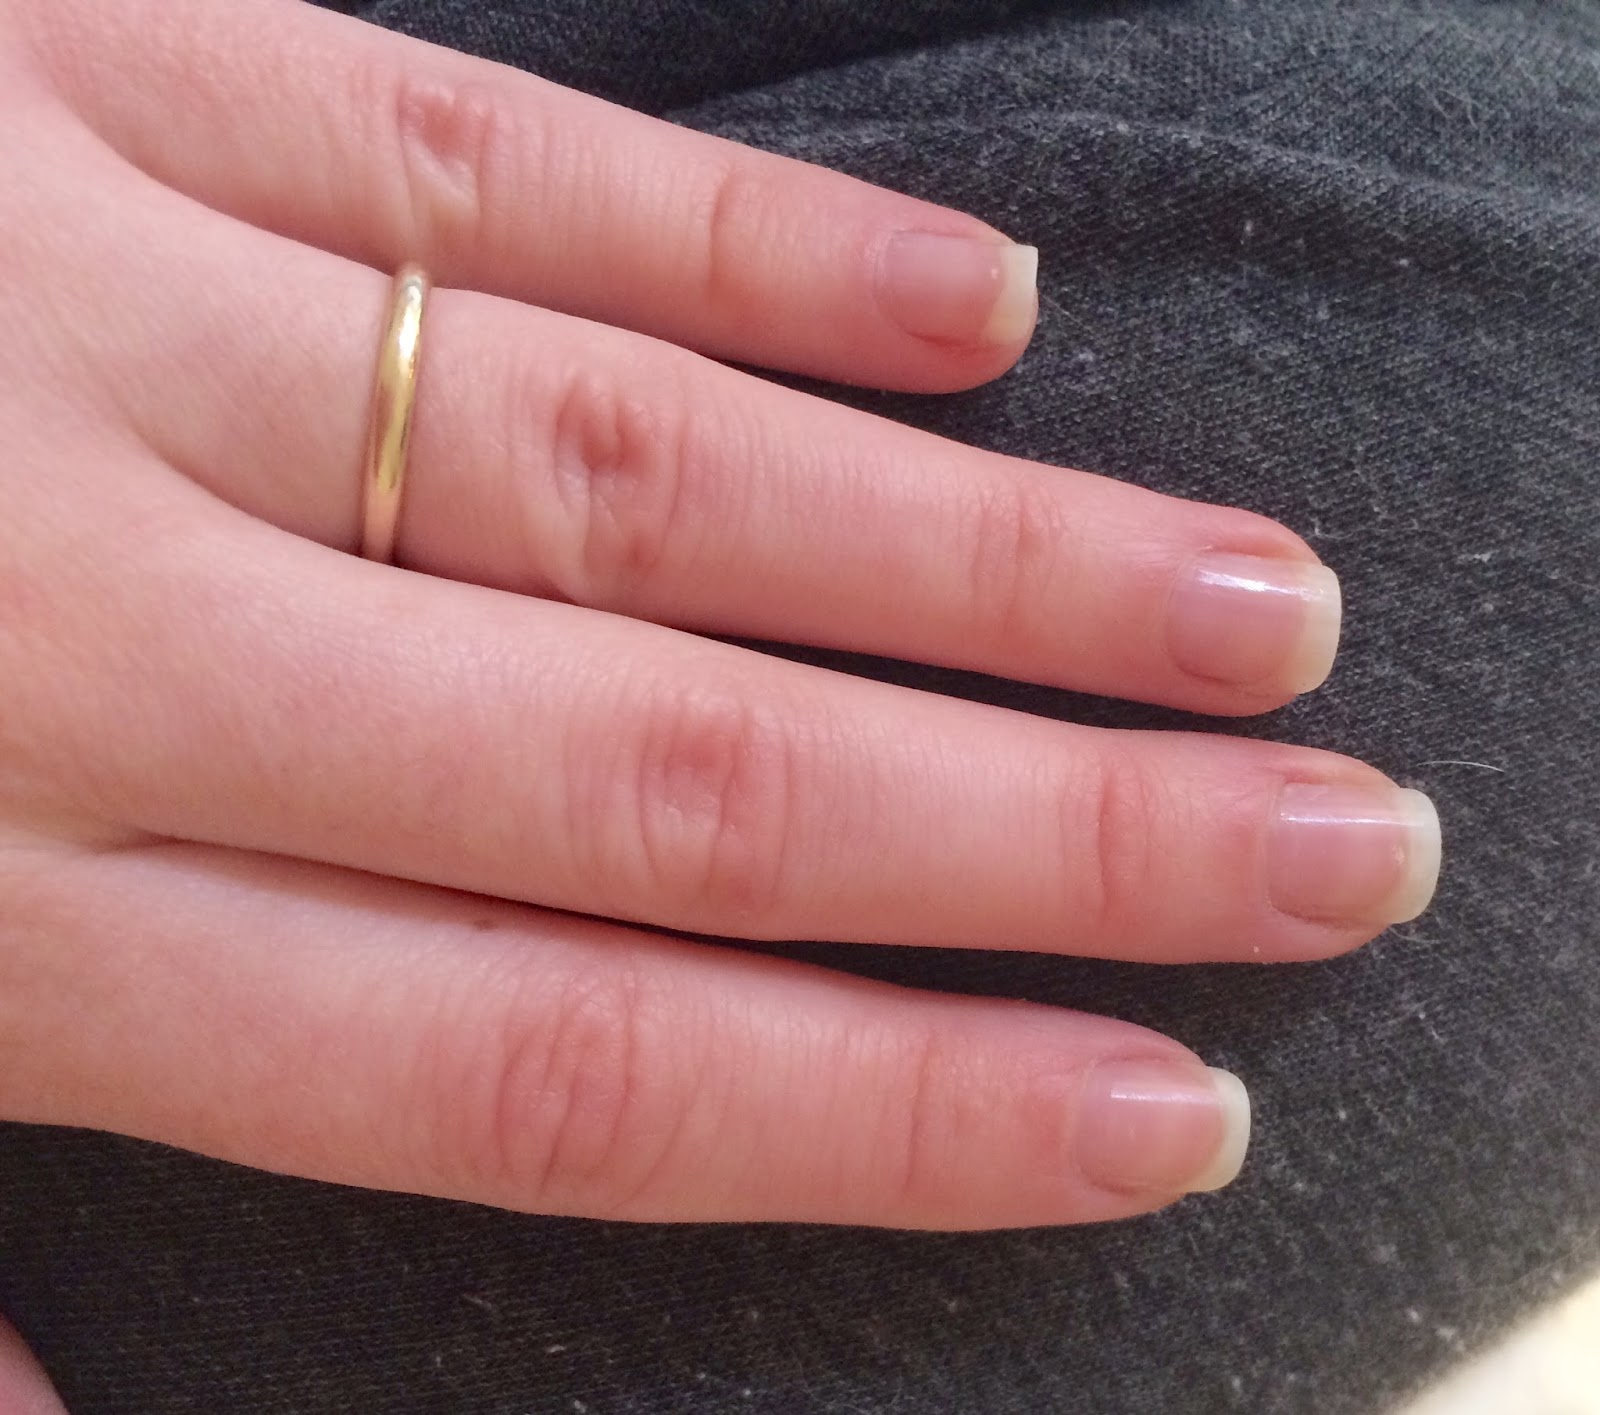 a picture of Nails after OPI Nail Envy Nail Strengthener